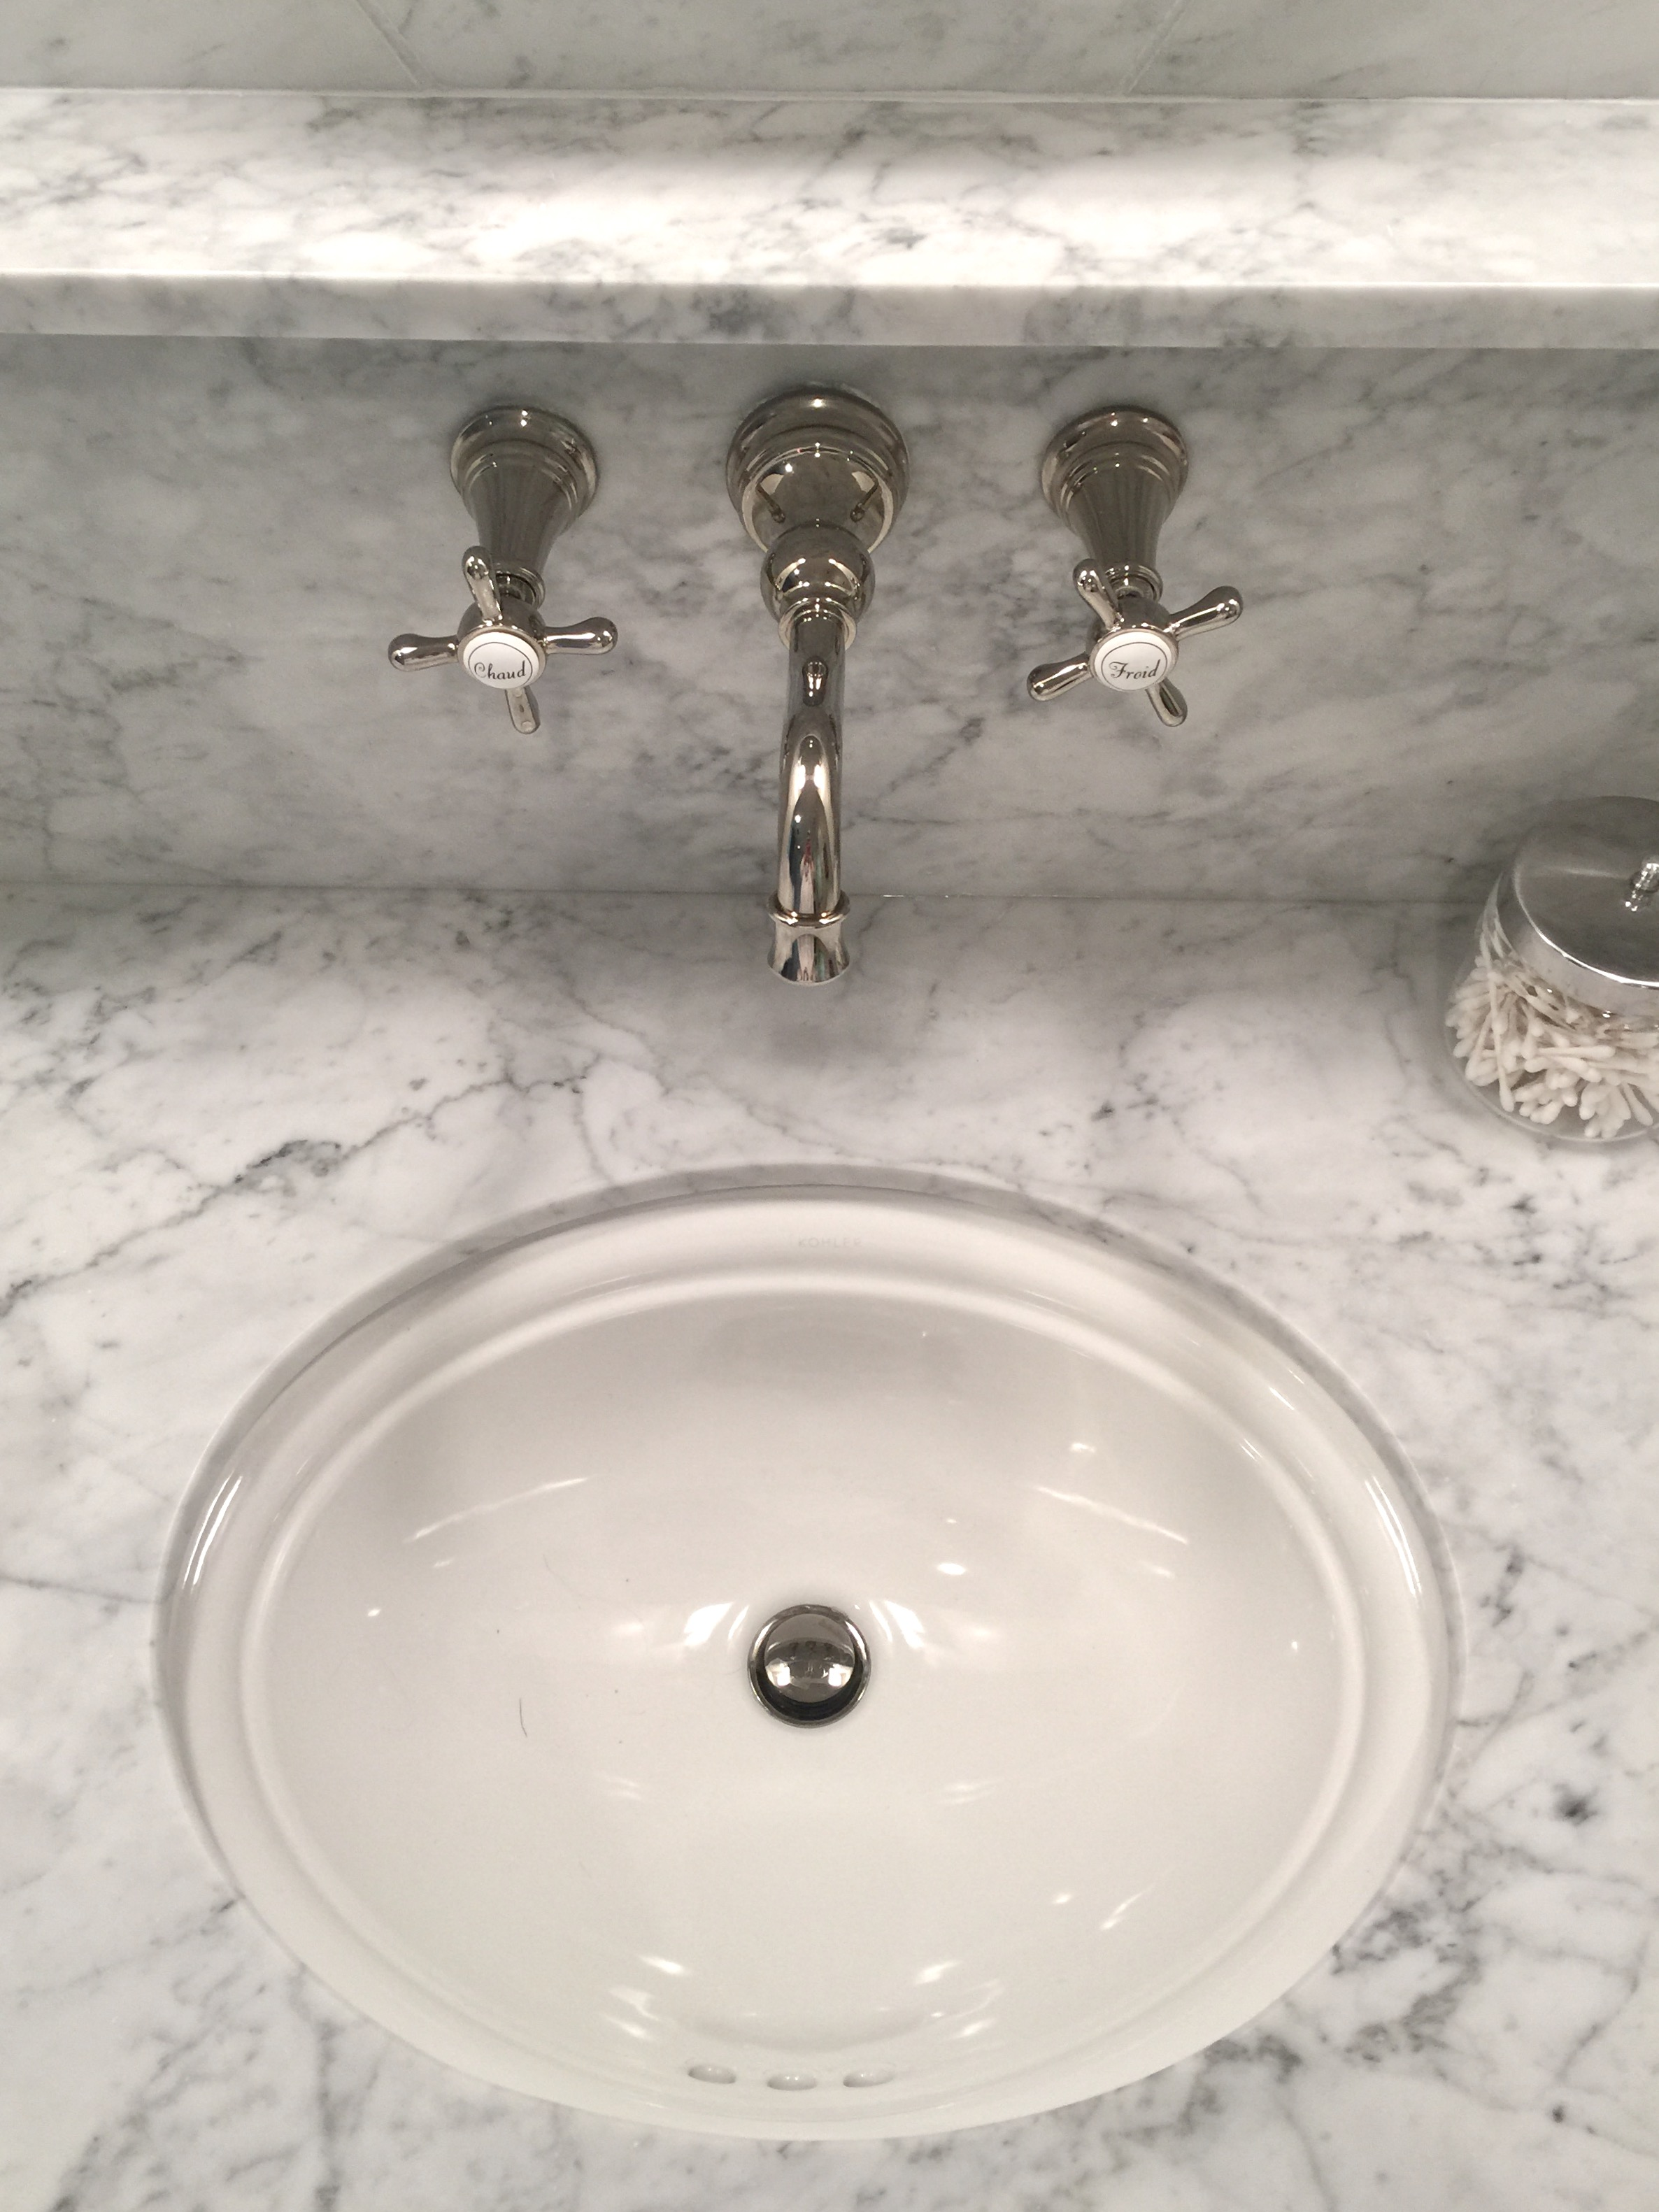 Cararra marble countertop and splash with wall mount faucet - Designer: Carla Aston